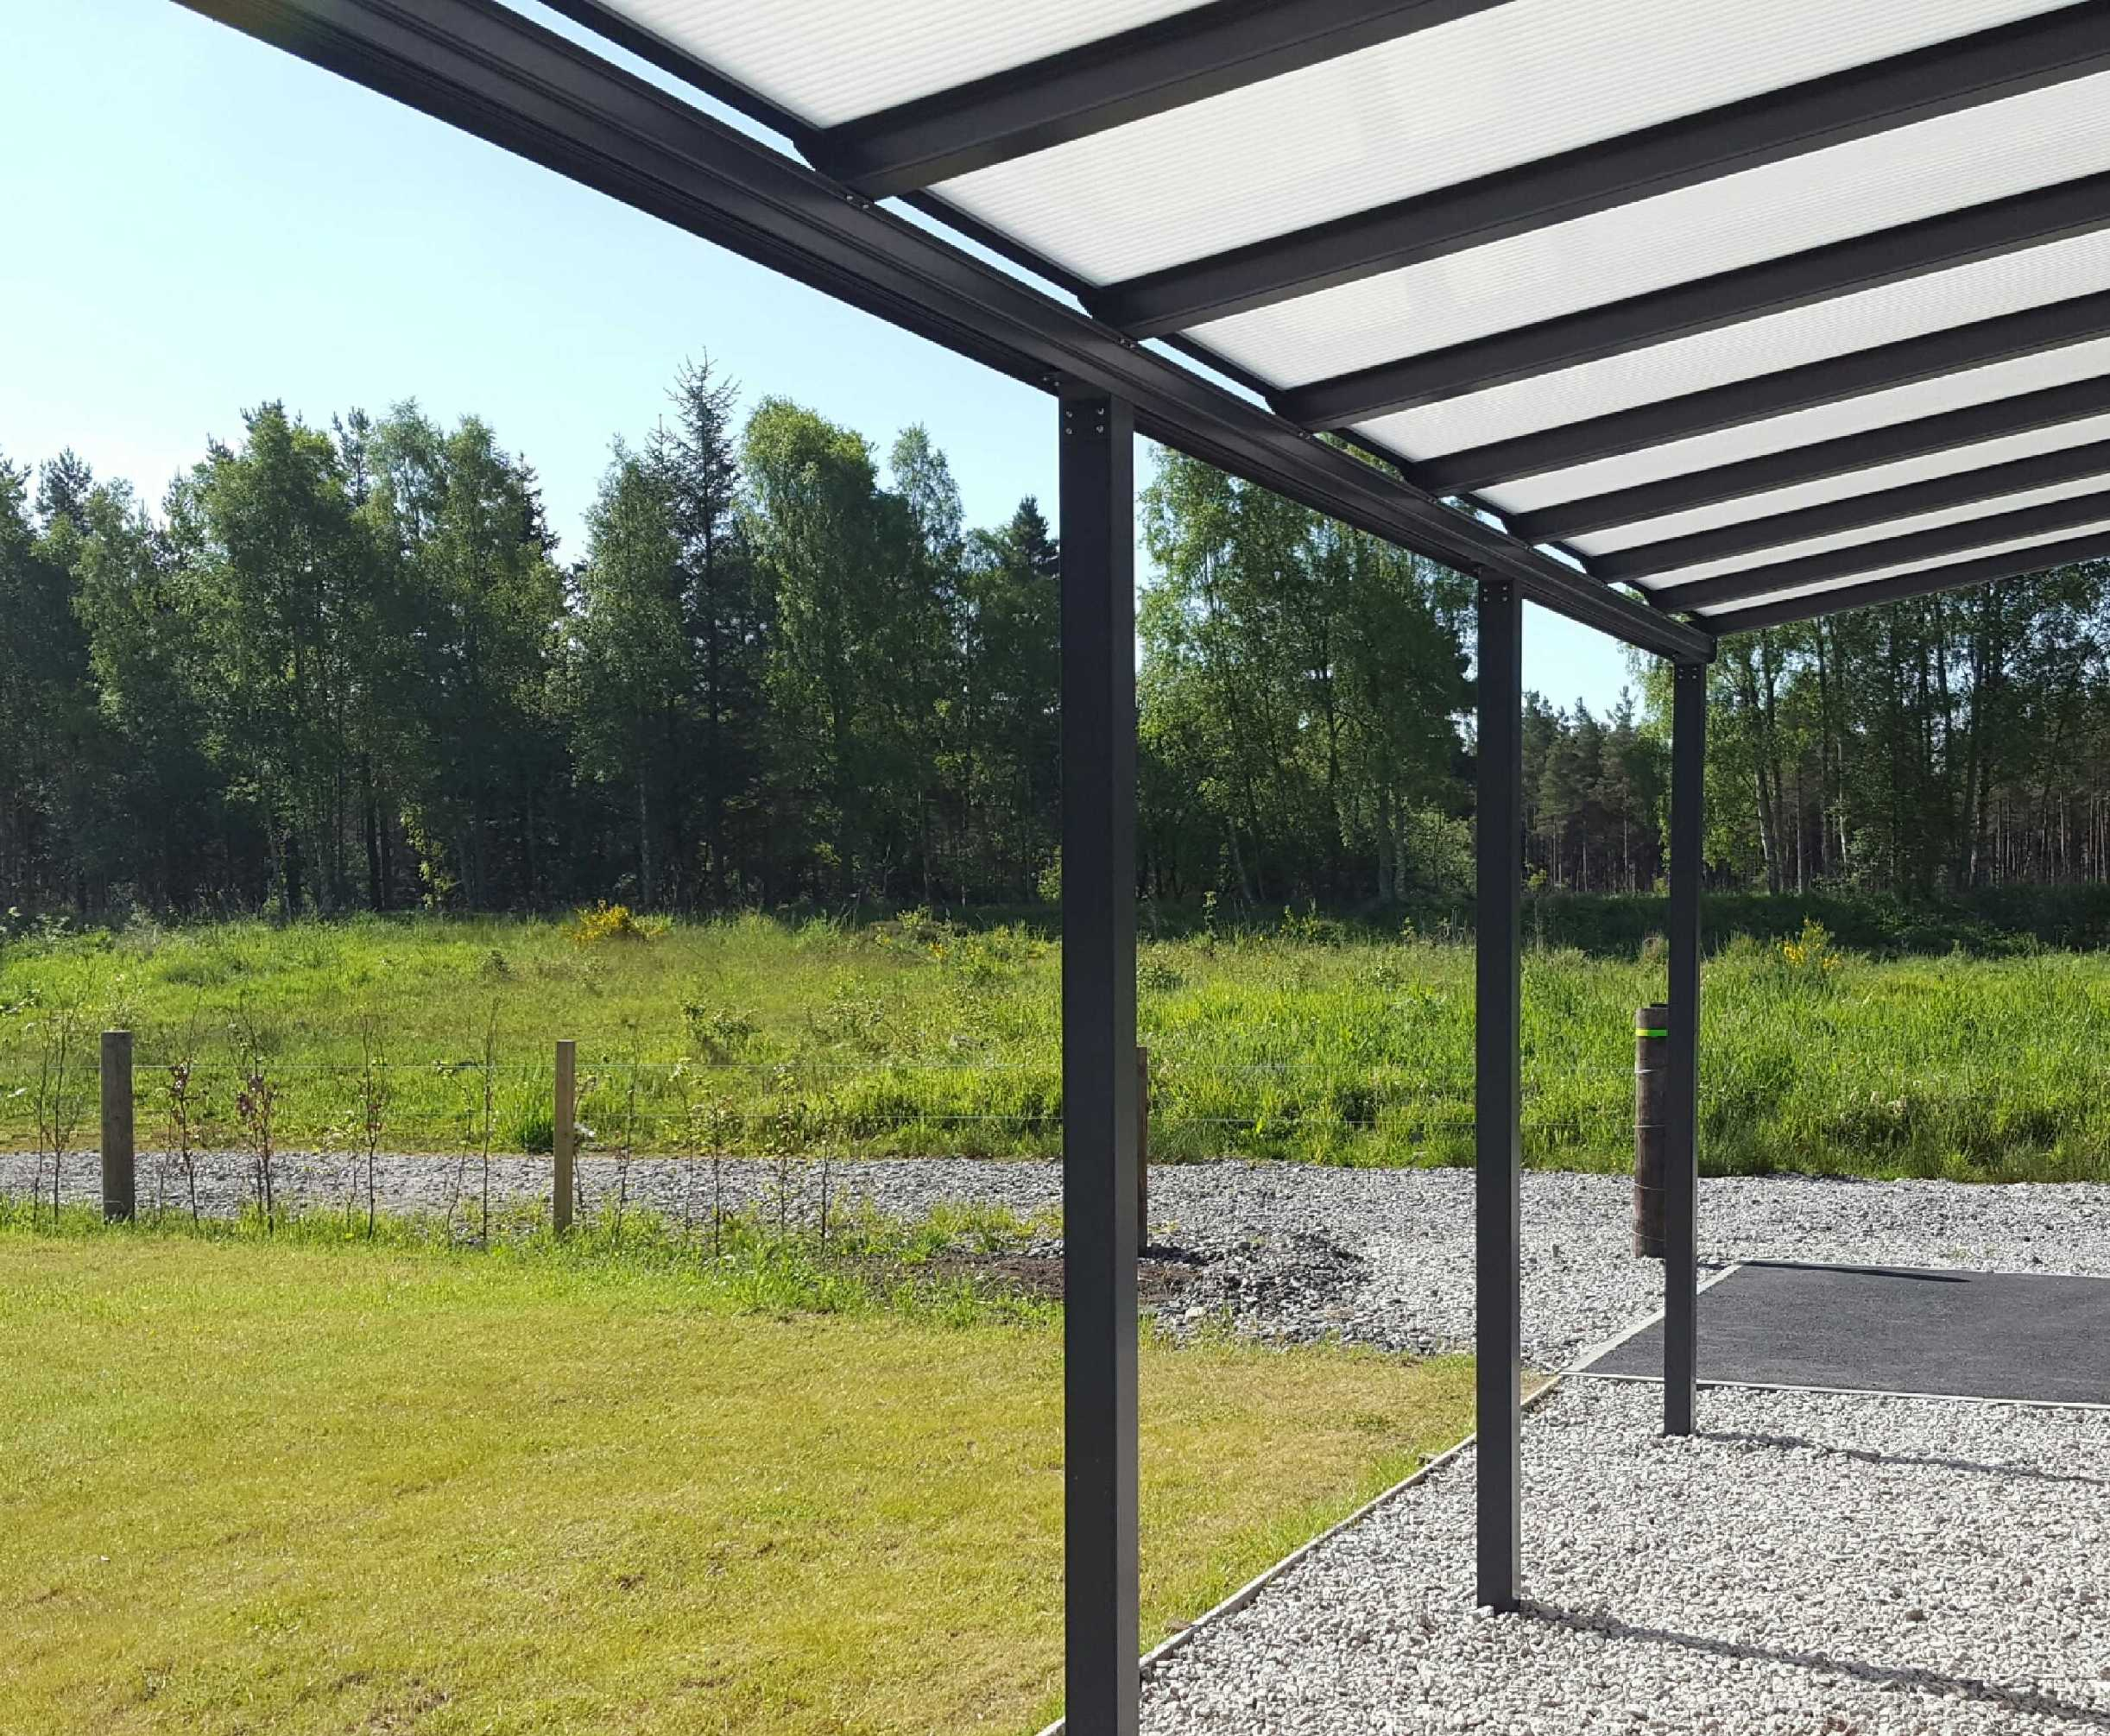 Omega Smart Lean-To Canopy, Anthracite Grey, 6mm Glass Clear Plate Polycarbonate Glazing - 5.6m (W) x 2.0m (P), (3) Supporting Posts